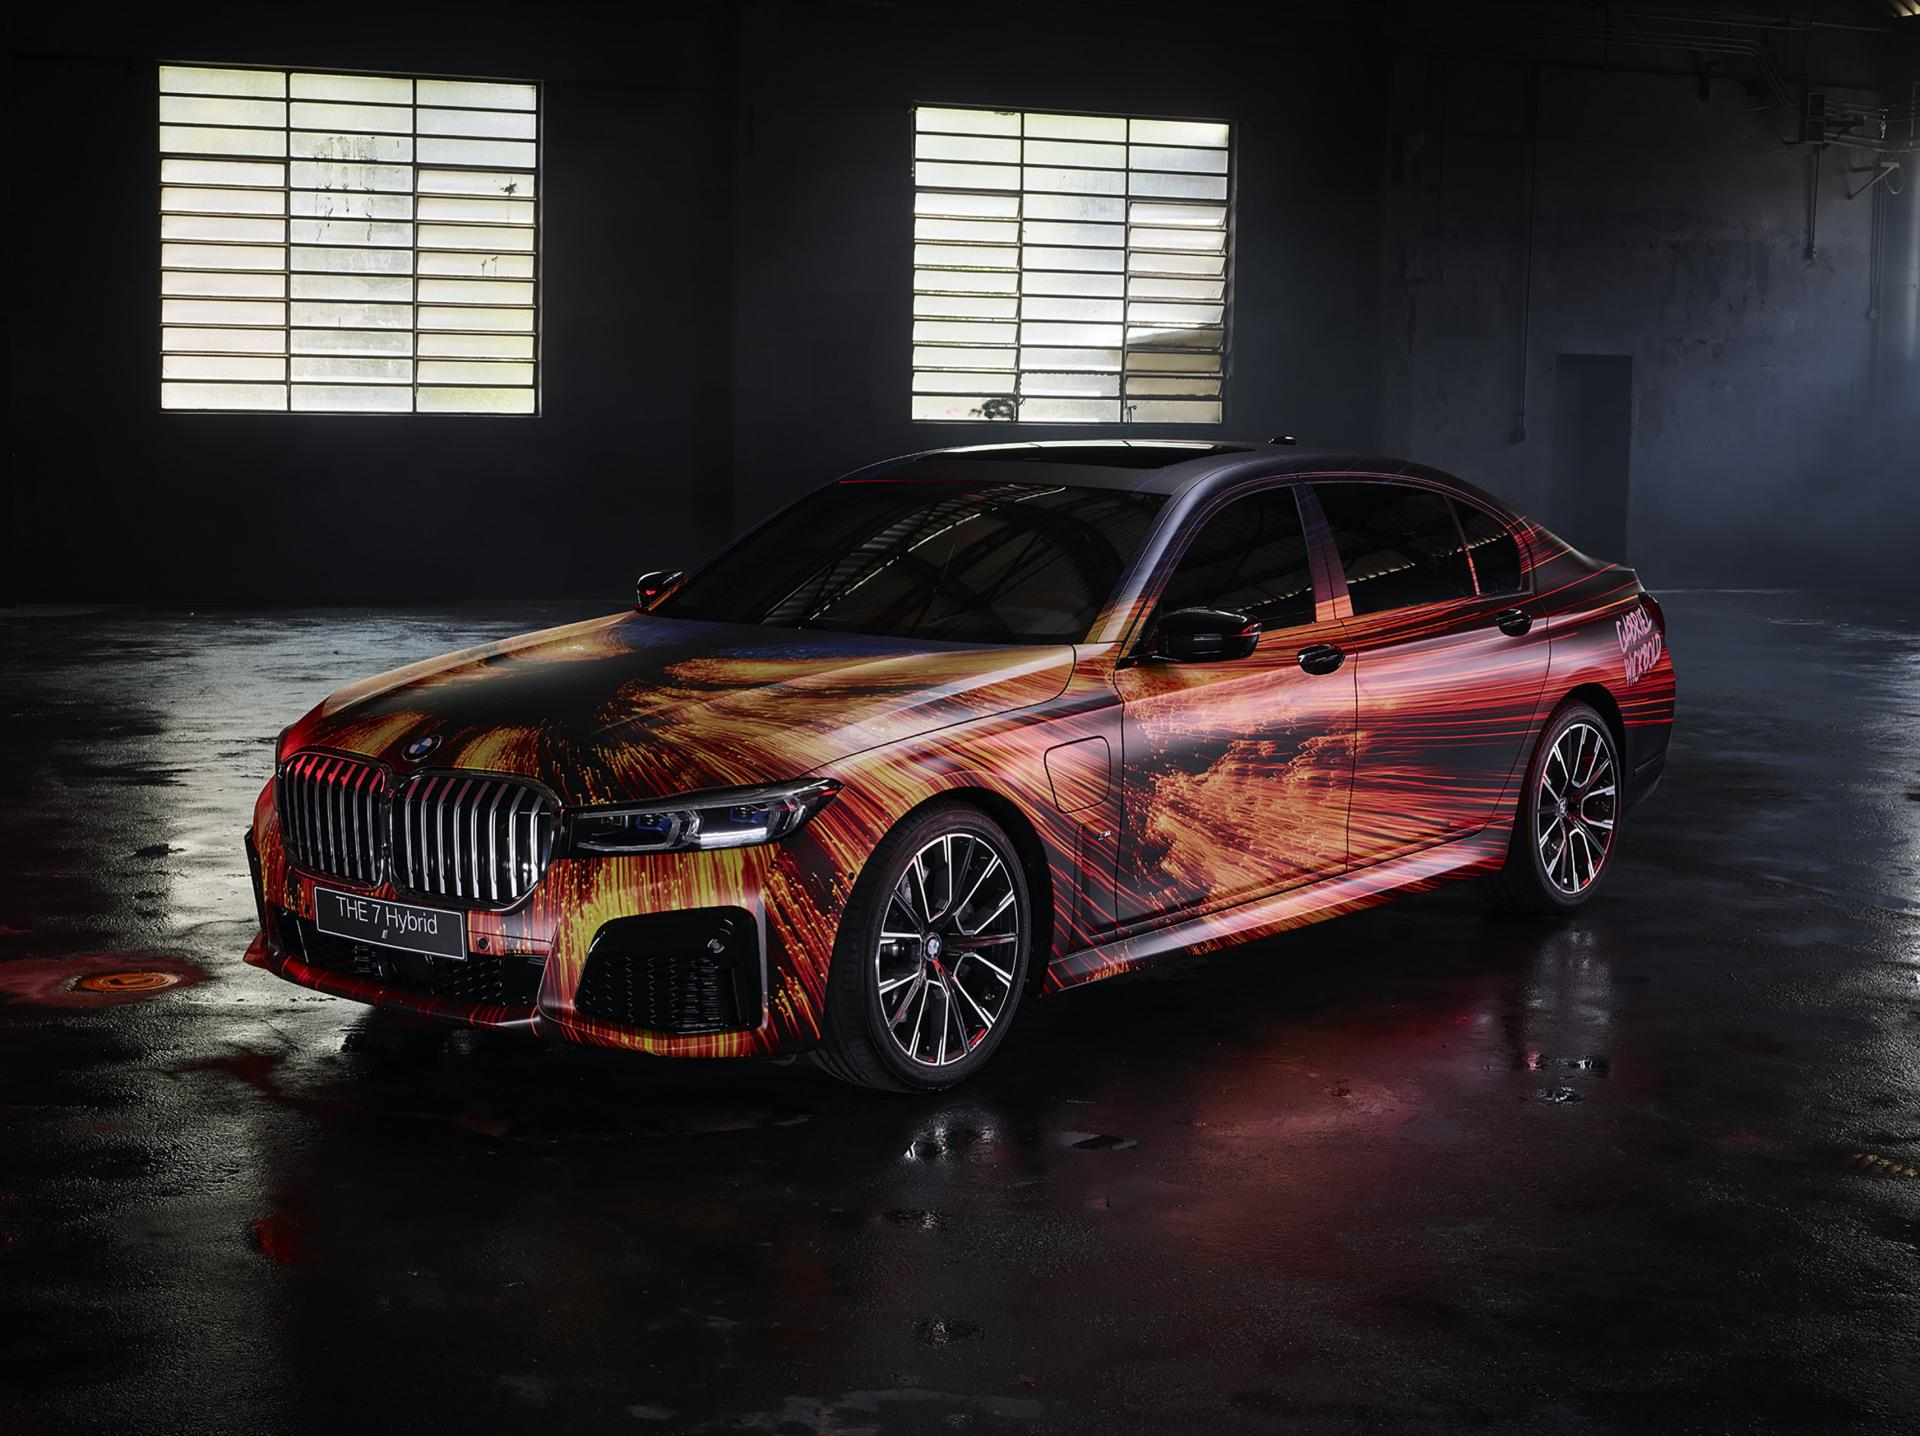 BMW-7-Series-745Le-M-Sport-Gabriel-Wickbold-Car-Art-7